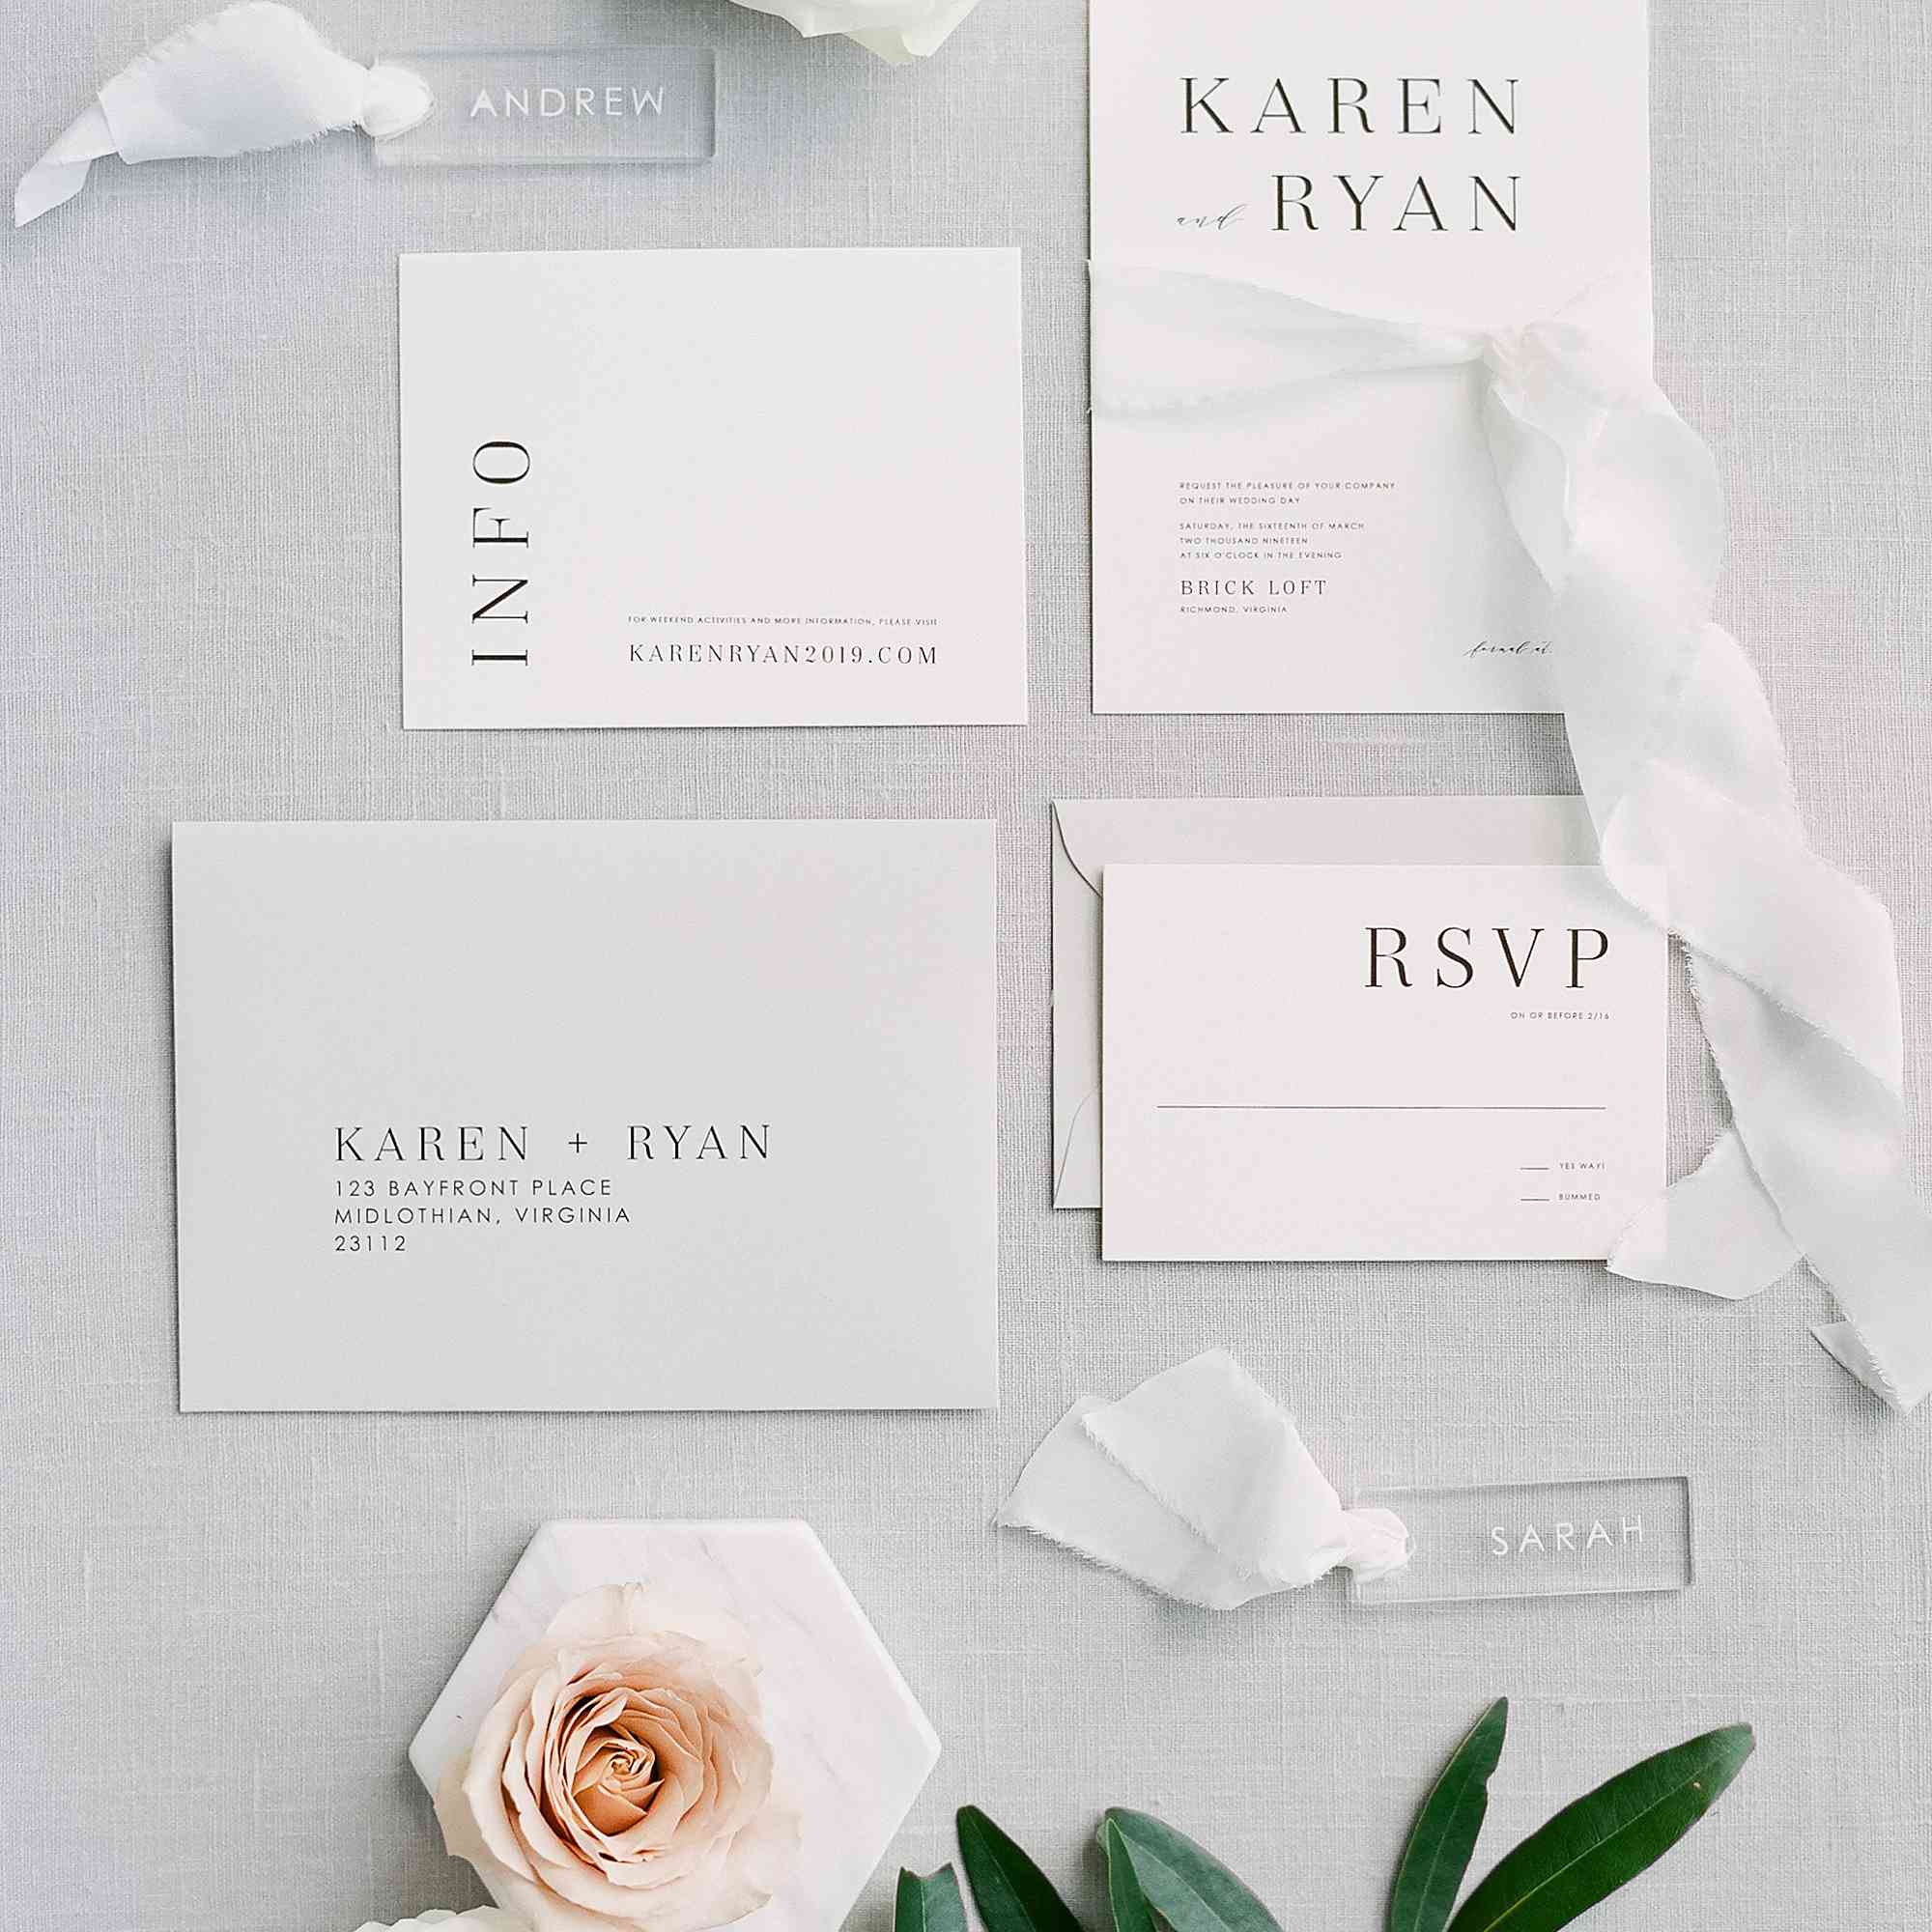 Wedding invitation suite with a website info insert